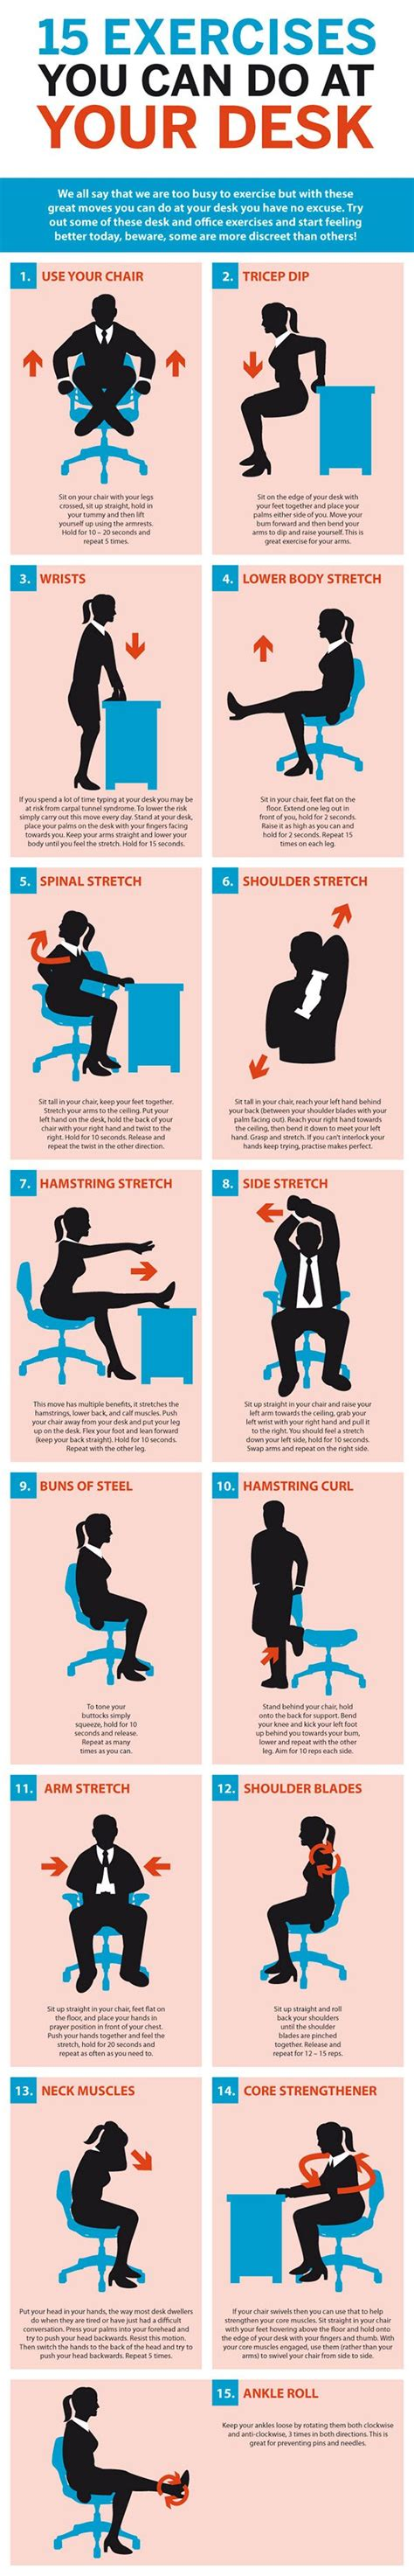 workouts to do at your desk 1000 images about exercises at work on anxiety and the